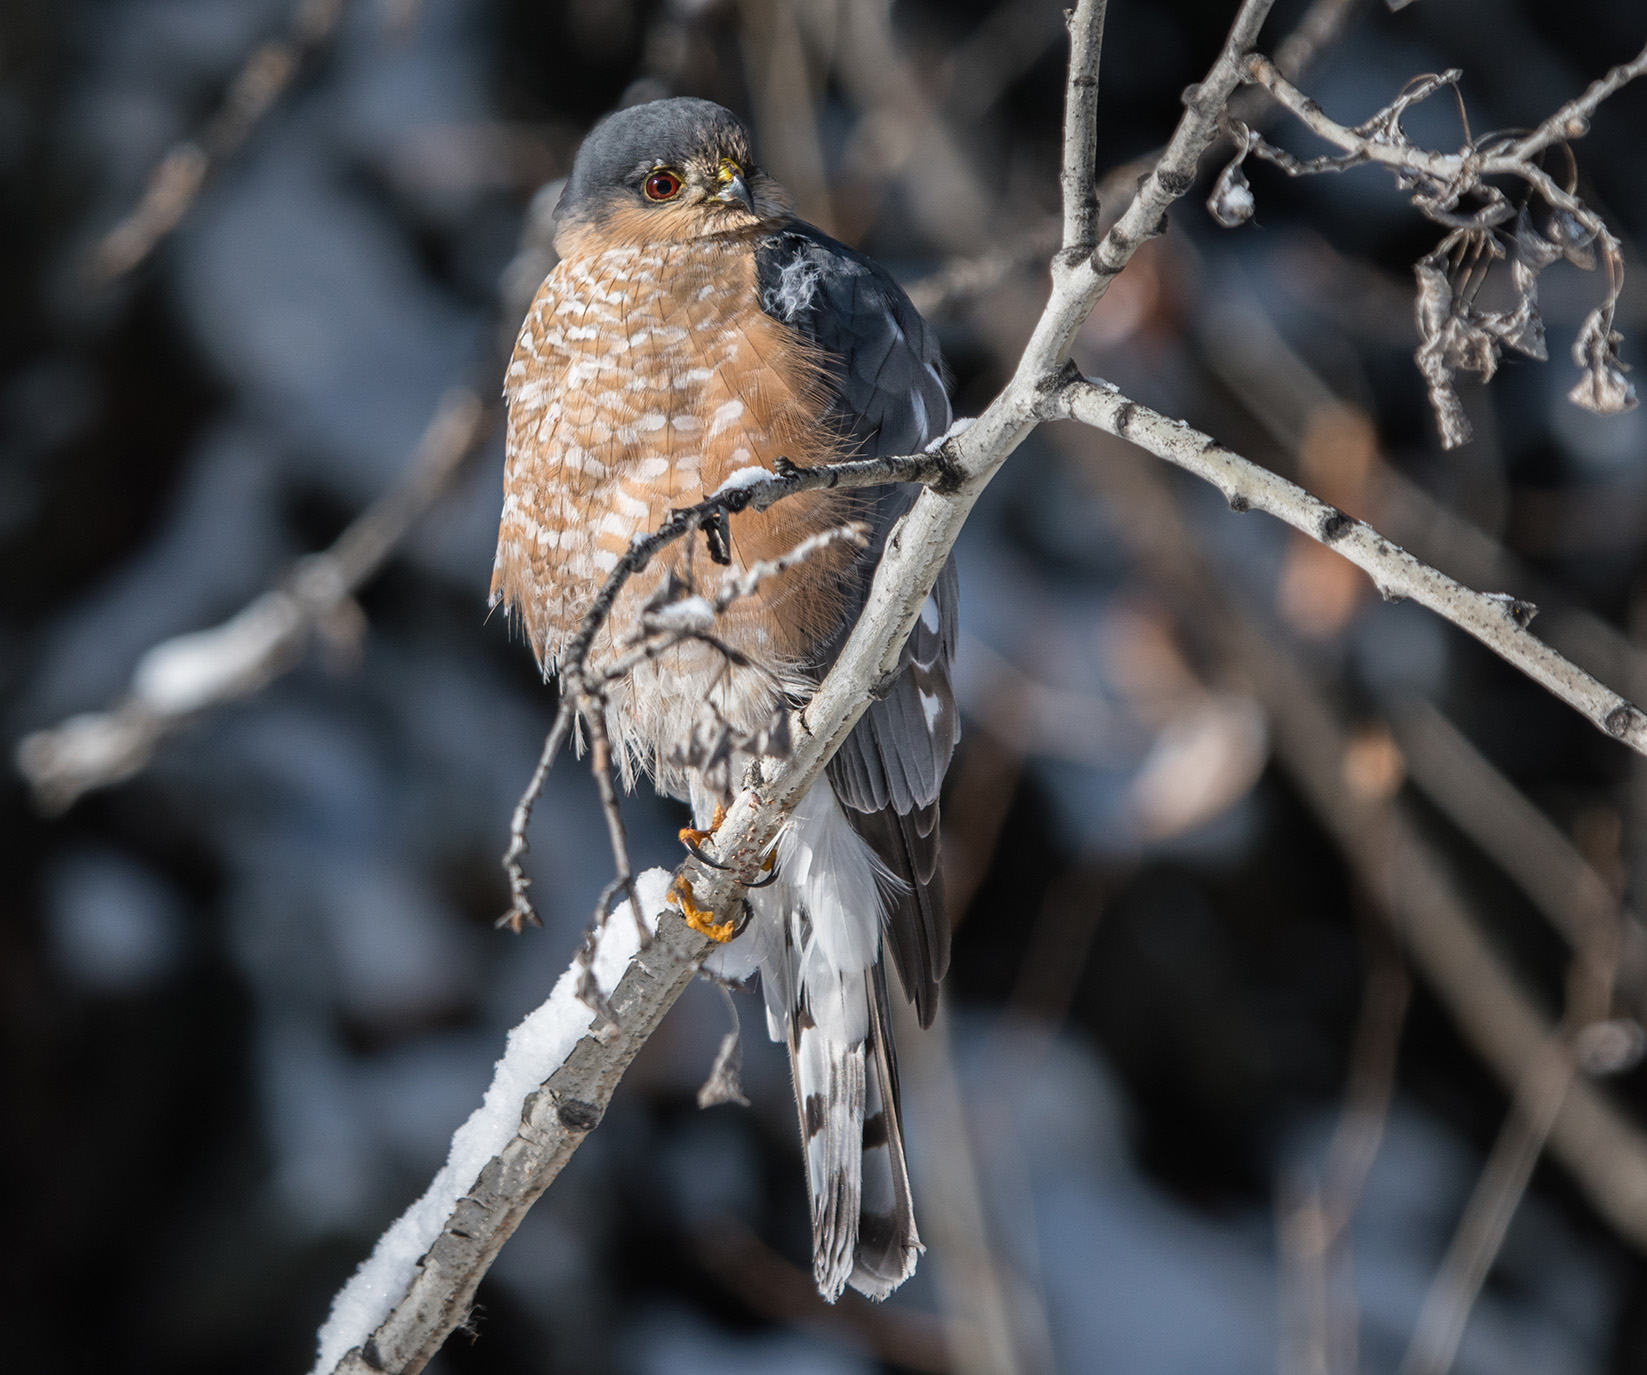 Sharp-shinned hawk by Shutterstock.